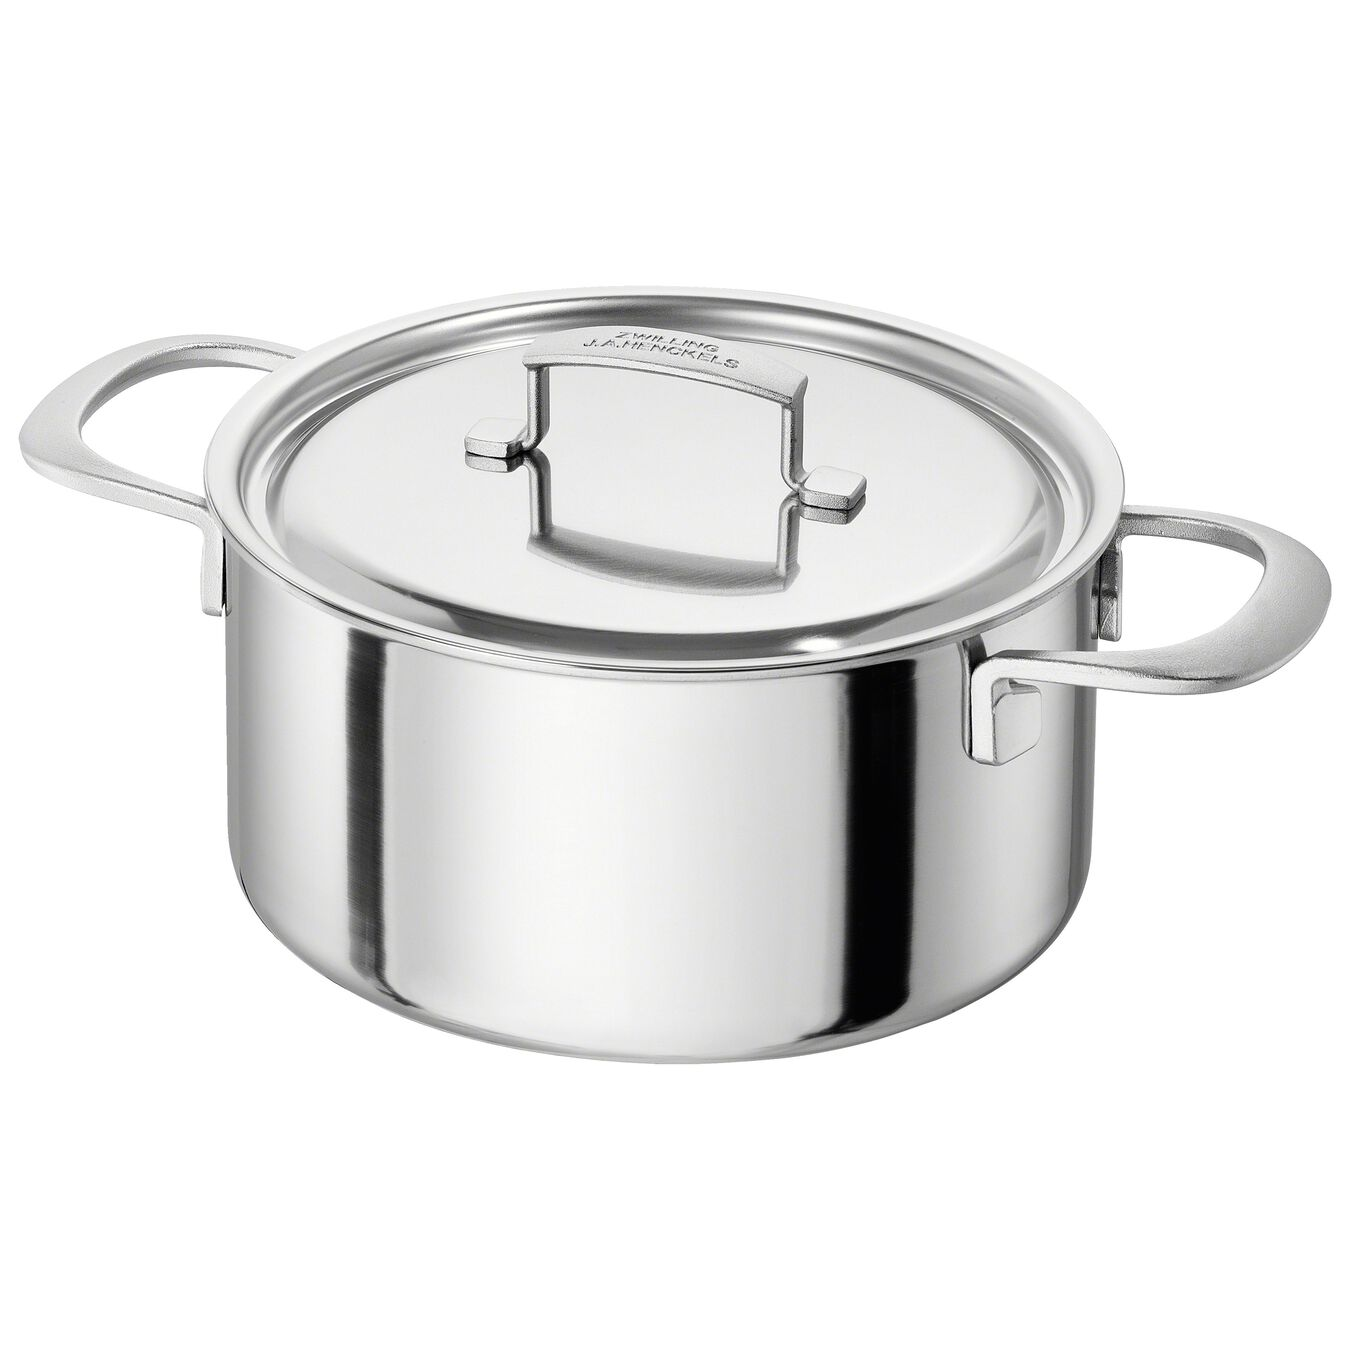 2.75 l 18/10 Stainless Steel Stew pot,,large 1